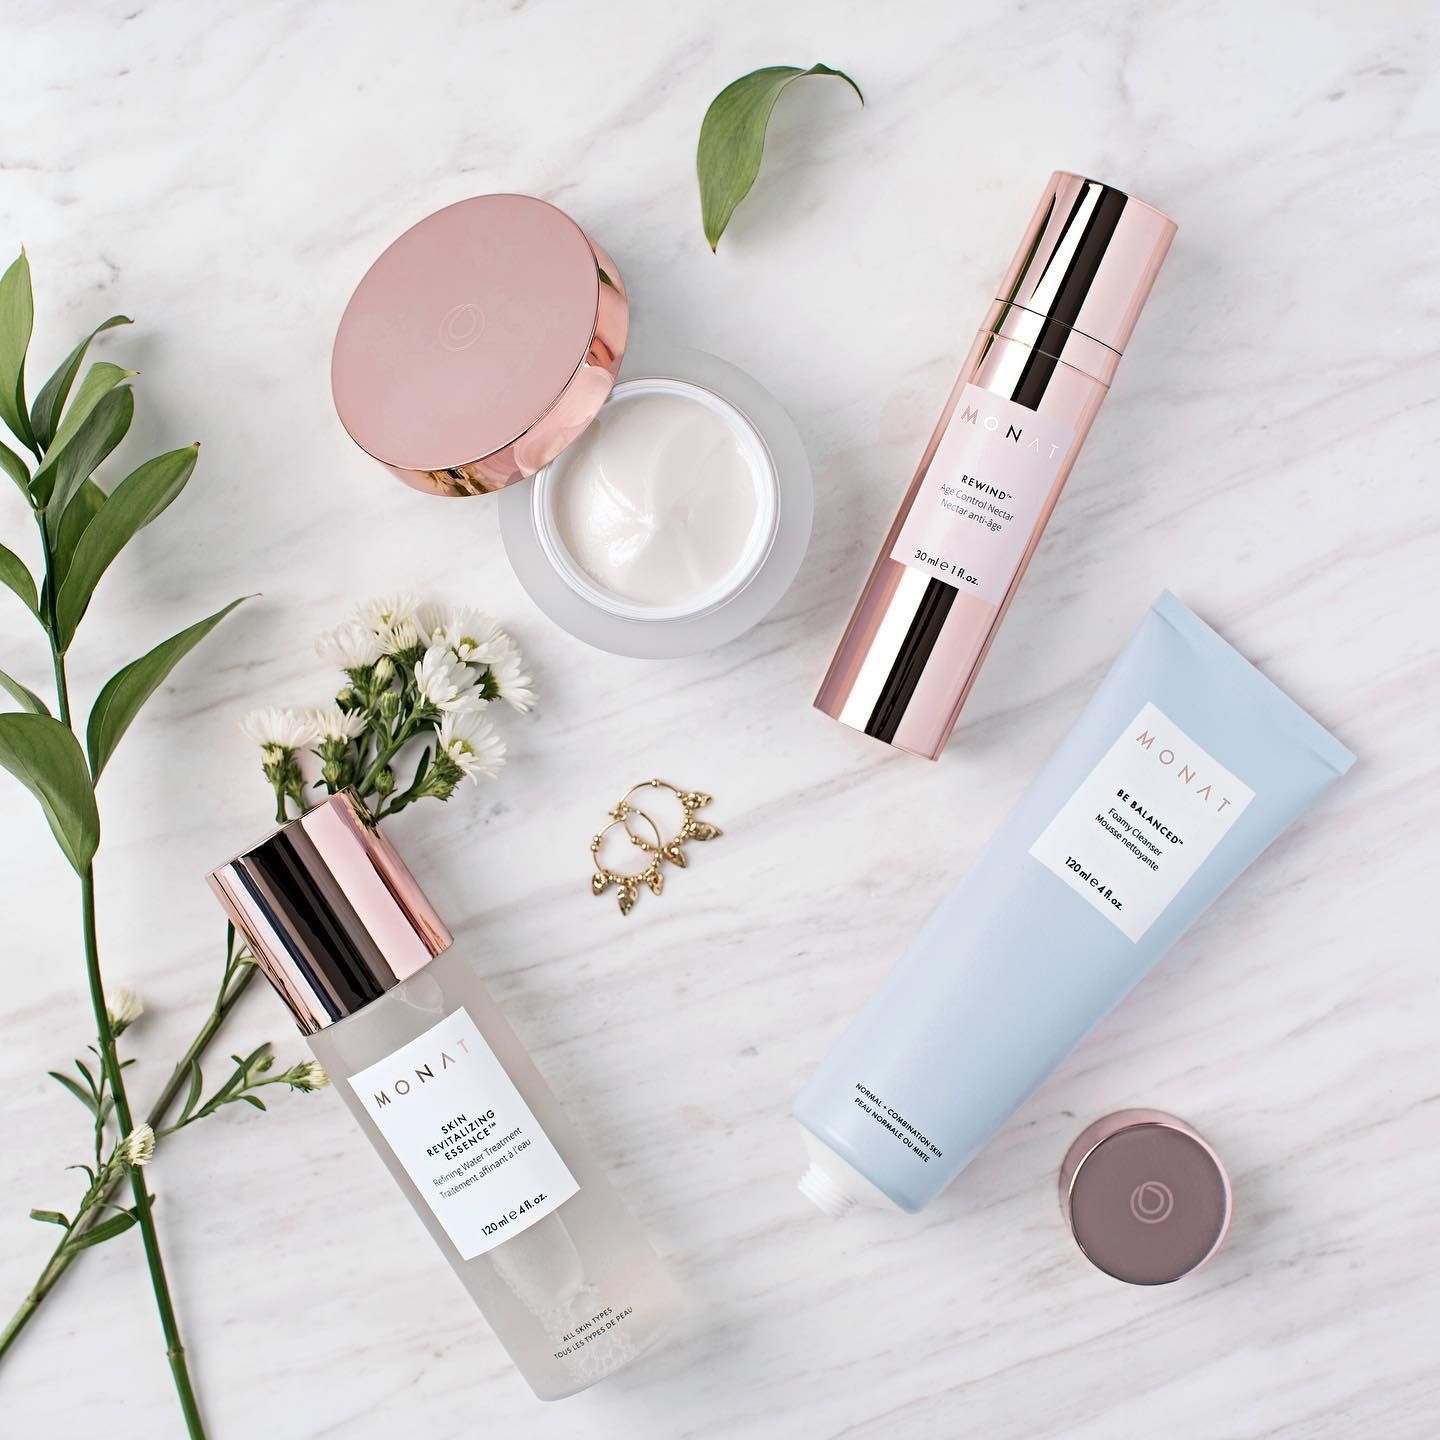 Newly announced Monat Skincare Lines Be Gentle & Be